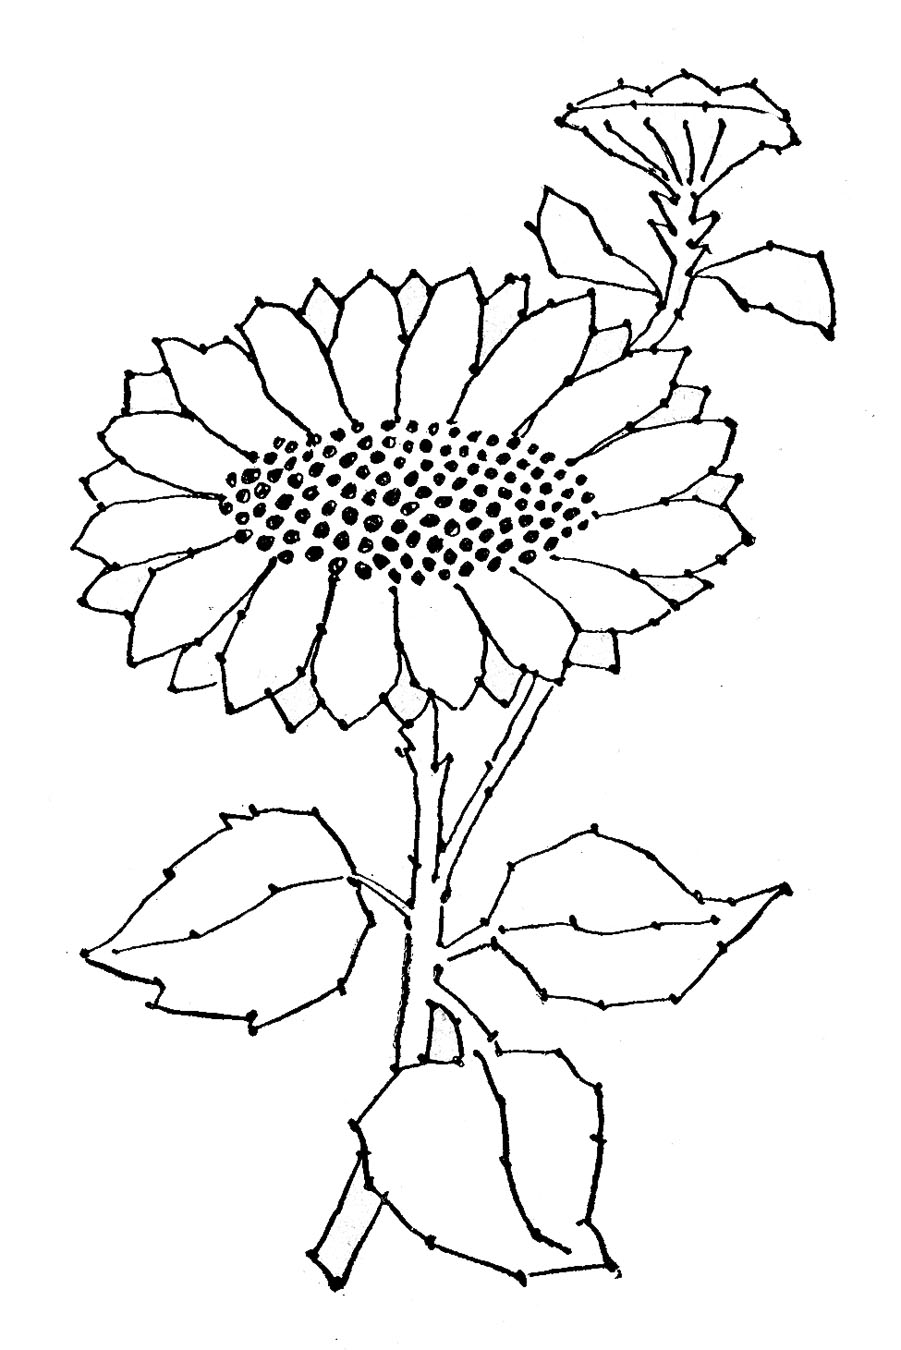 Sunflower Black And White Drawing At Getdrawings Free For